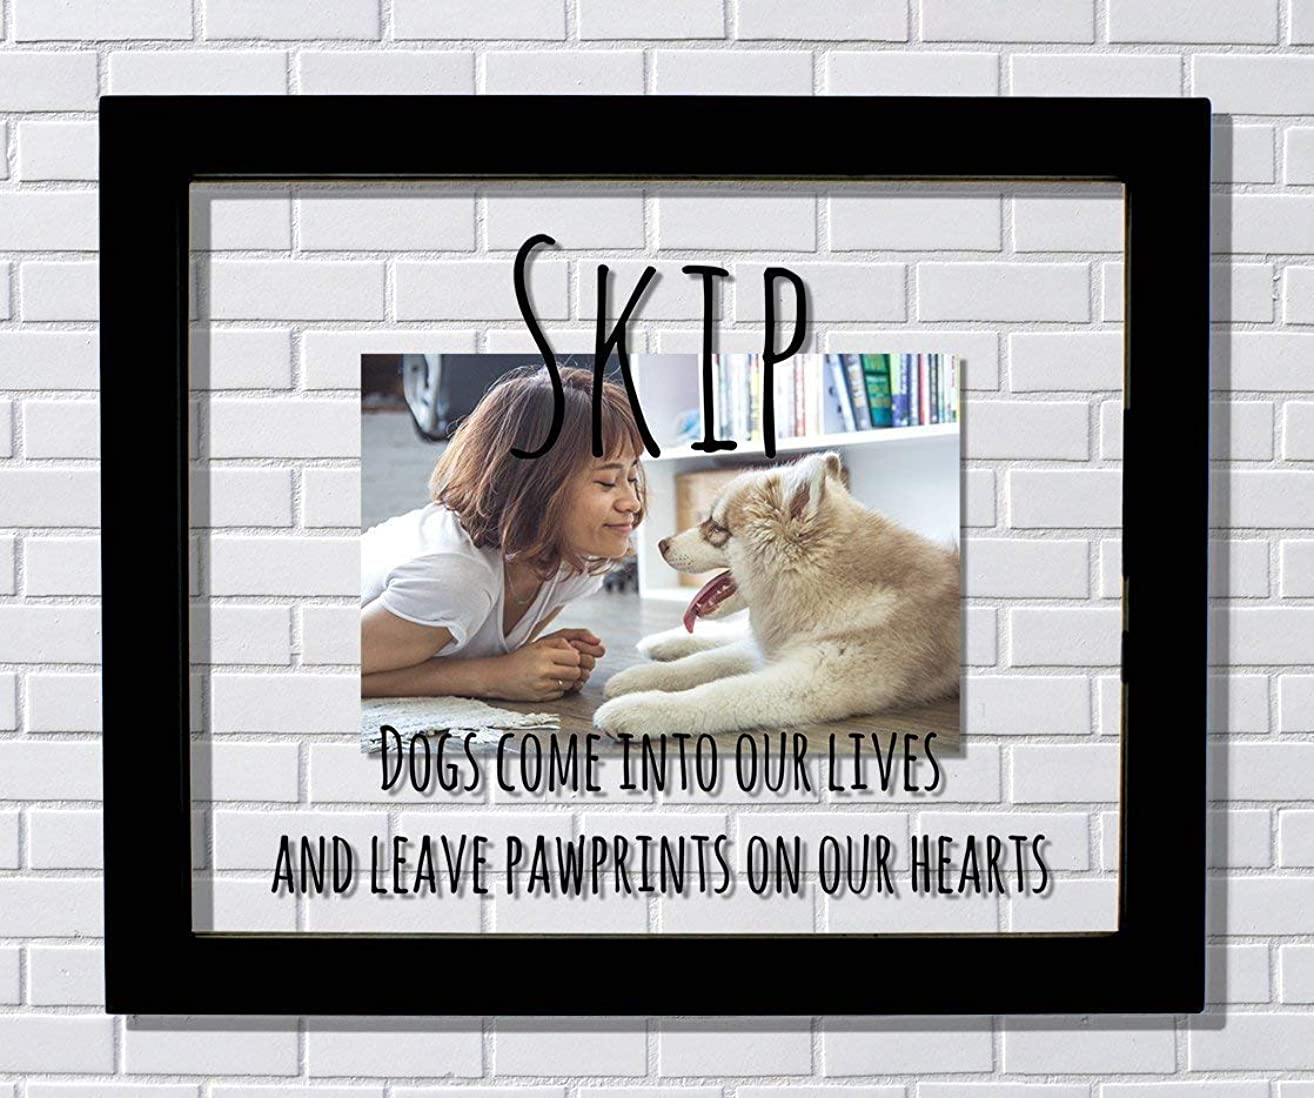 Custom Dog Frame - Floating Frame - Dogs come into our lives and leave pawprints on our hearts - Photo Picture - Dog Pet Loss Remembrance - Personalized Custom Name